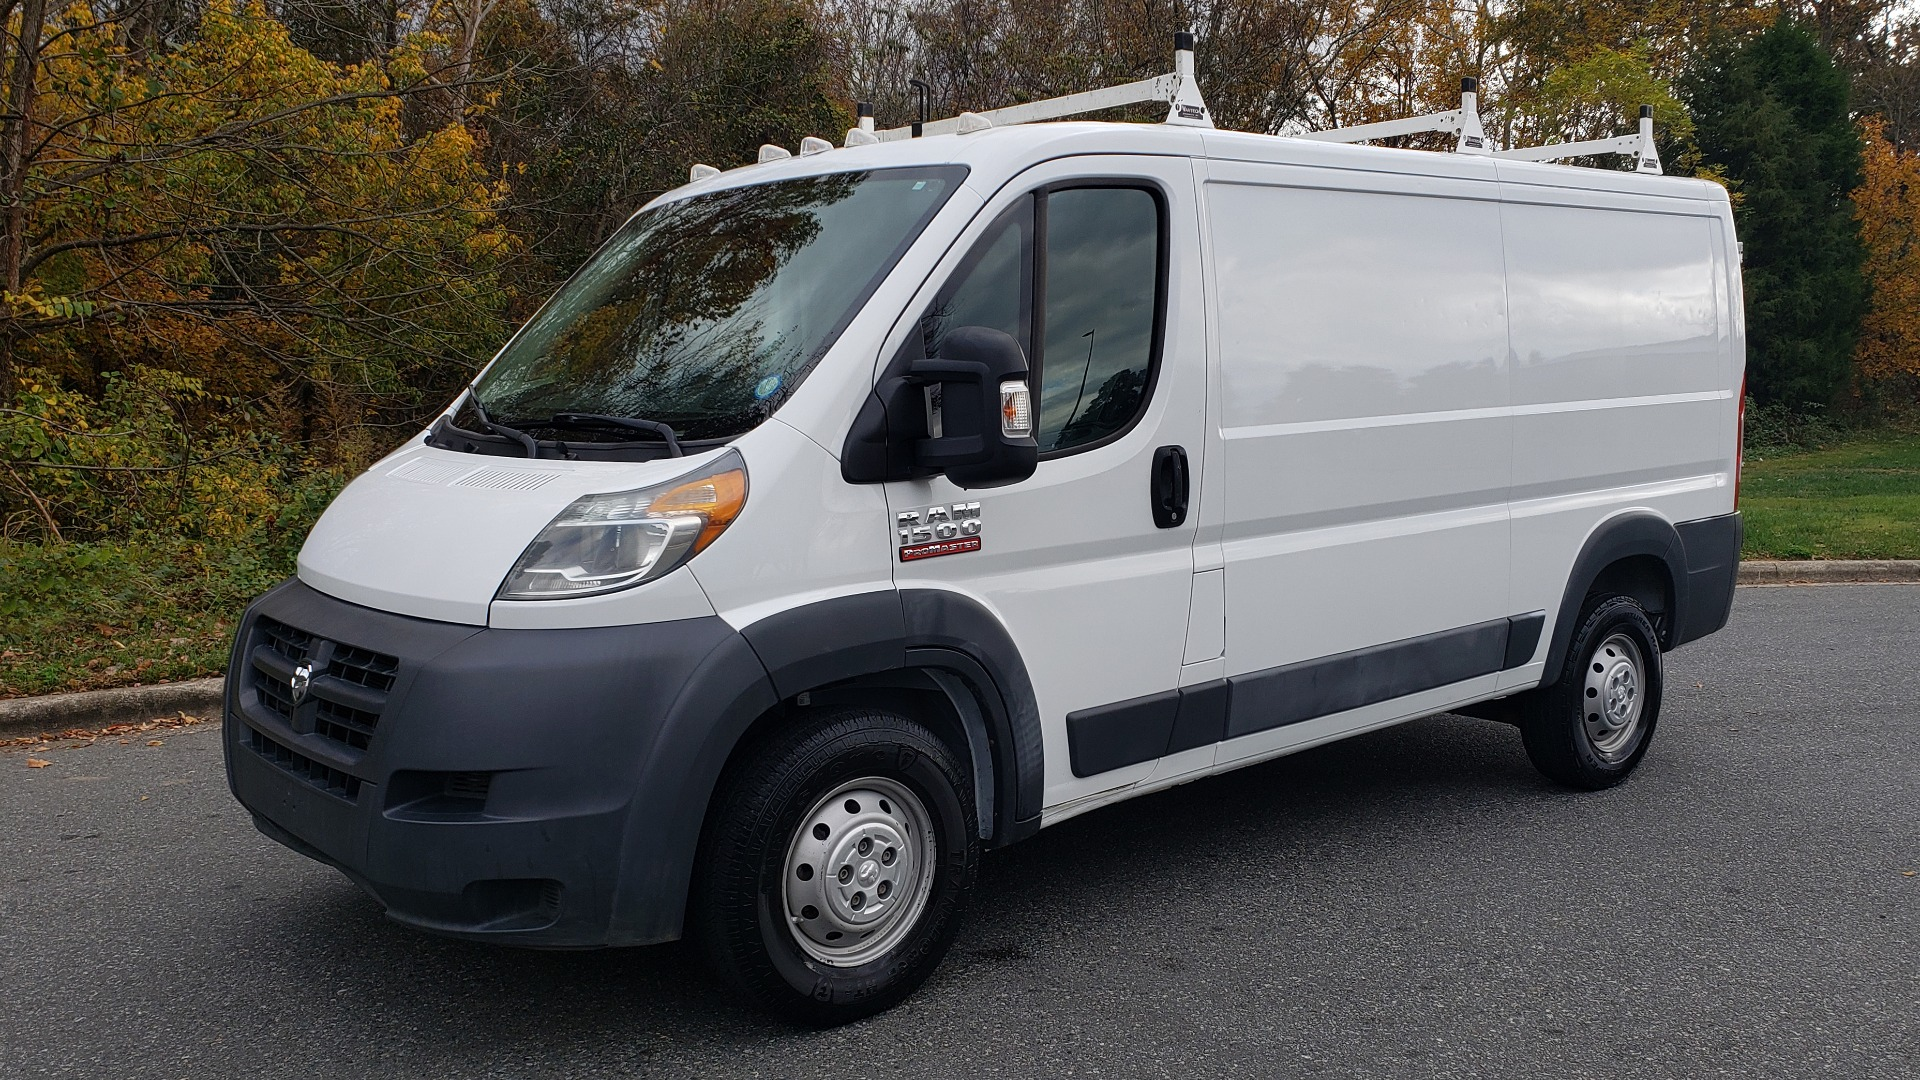 Used 2015 Ram PROMASTER CARGO VAN 136-INCH WB / LOW ROOF / LADDER RACK / INSIDE RACKS for sale Sold at Formula Imports in Charlotte NC 28227 1